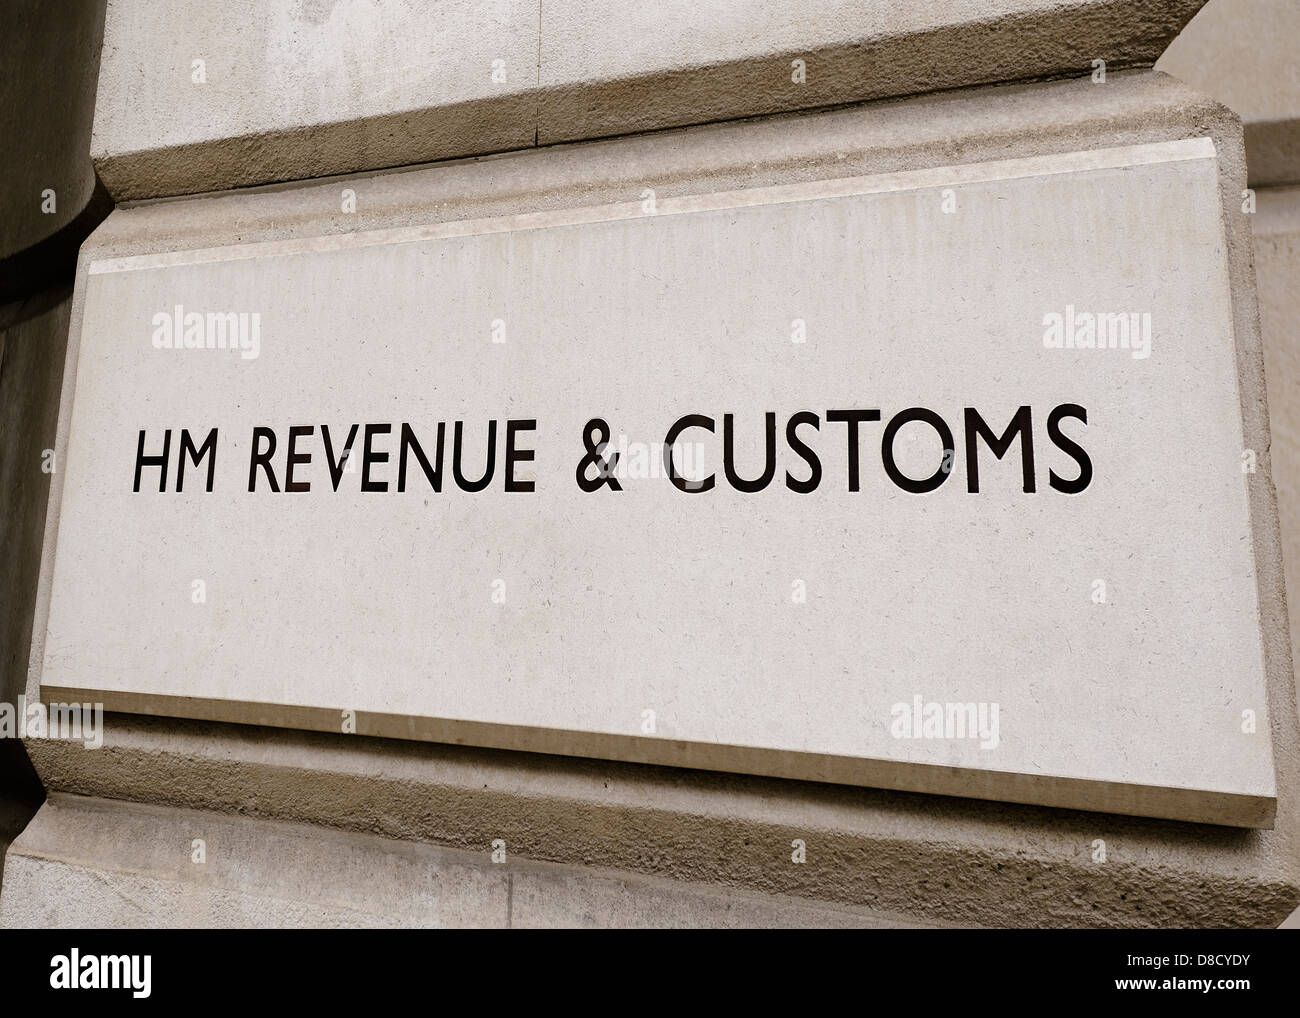 HM Revenue and Customs, Westminster, London, England, UK. - Stock Image